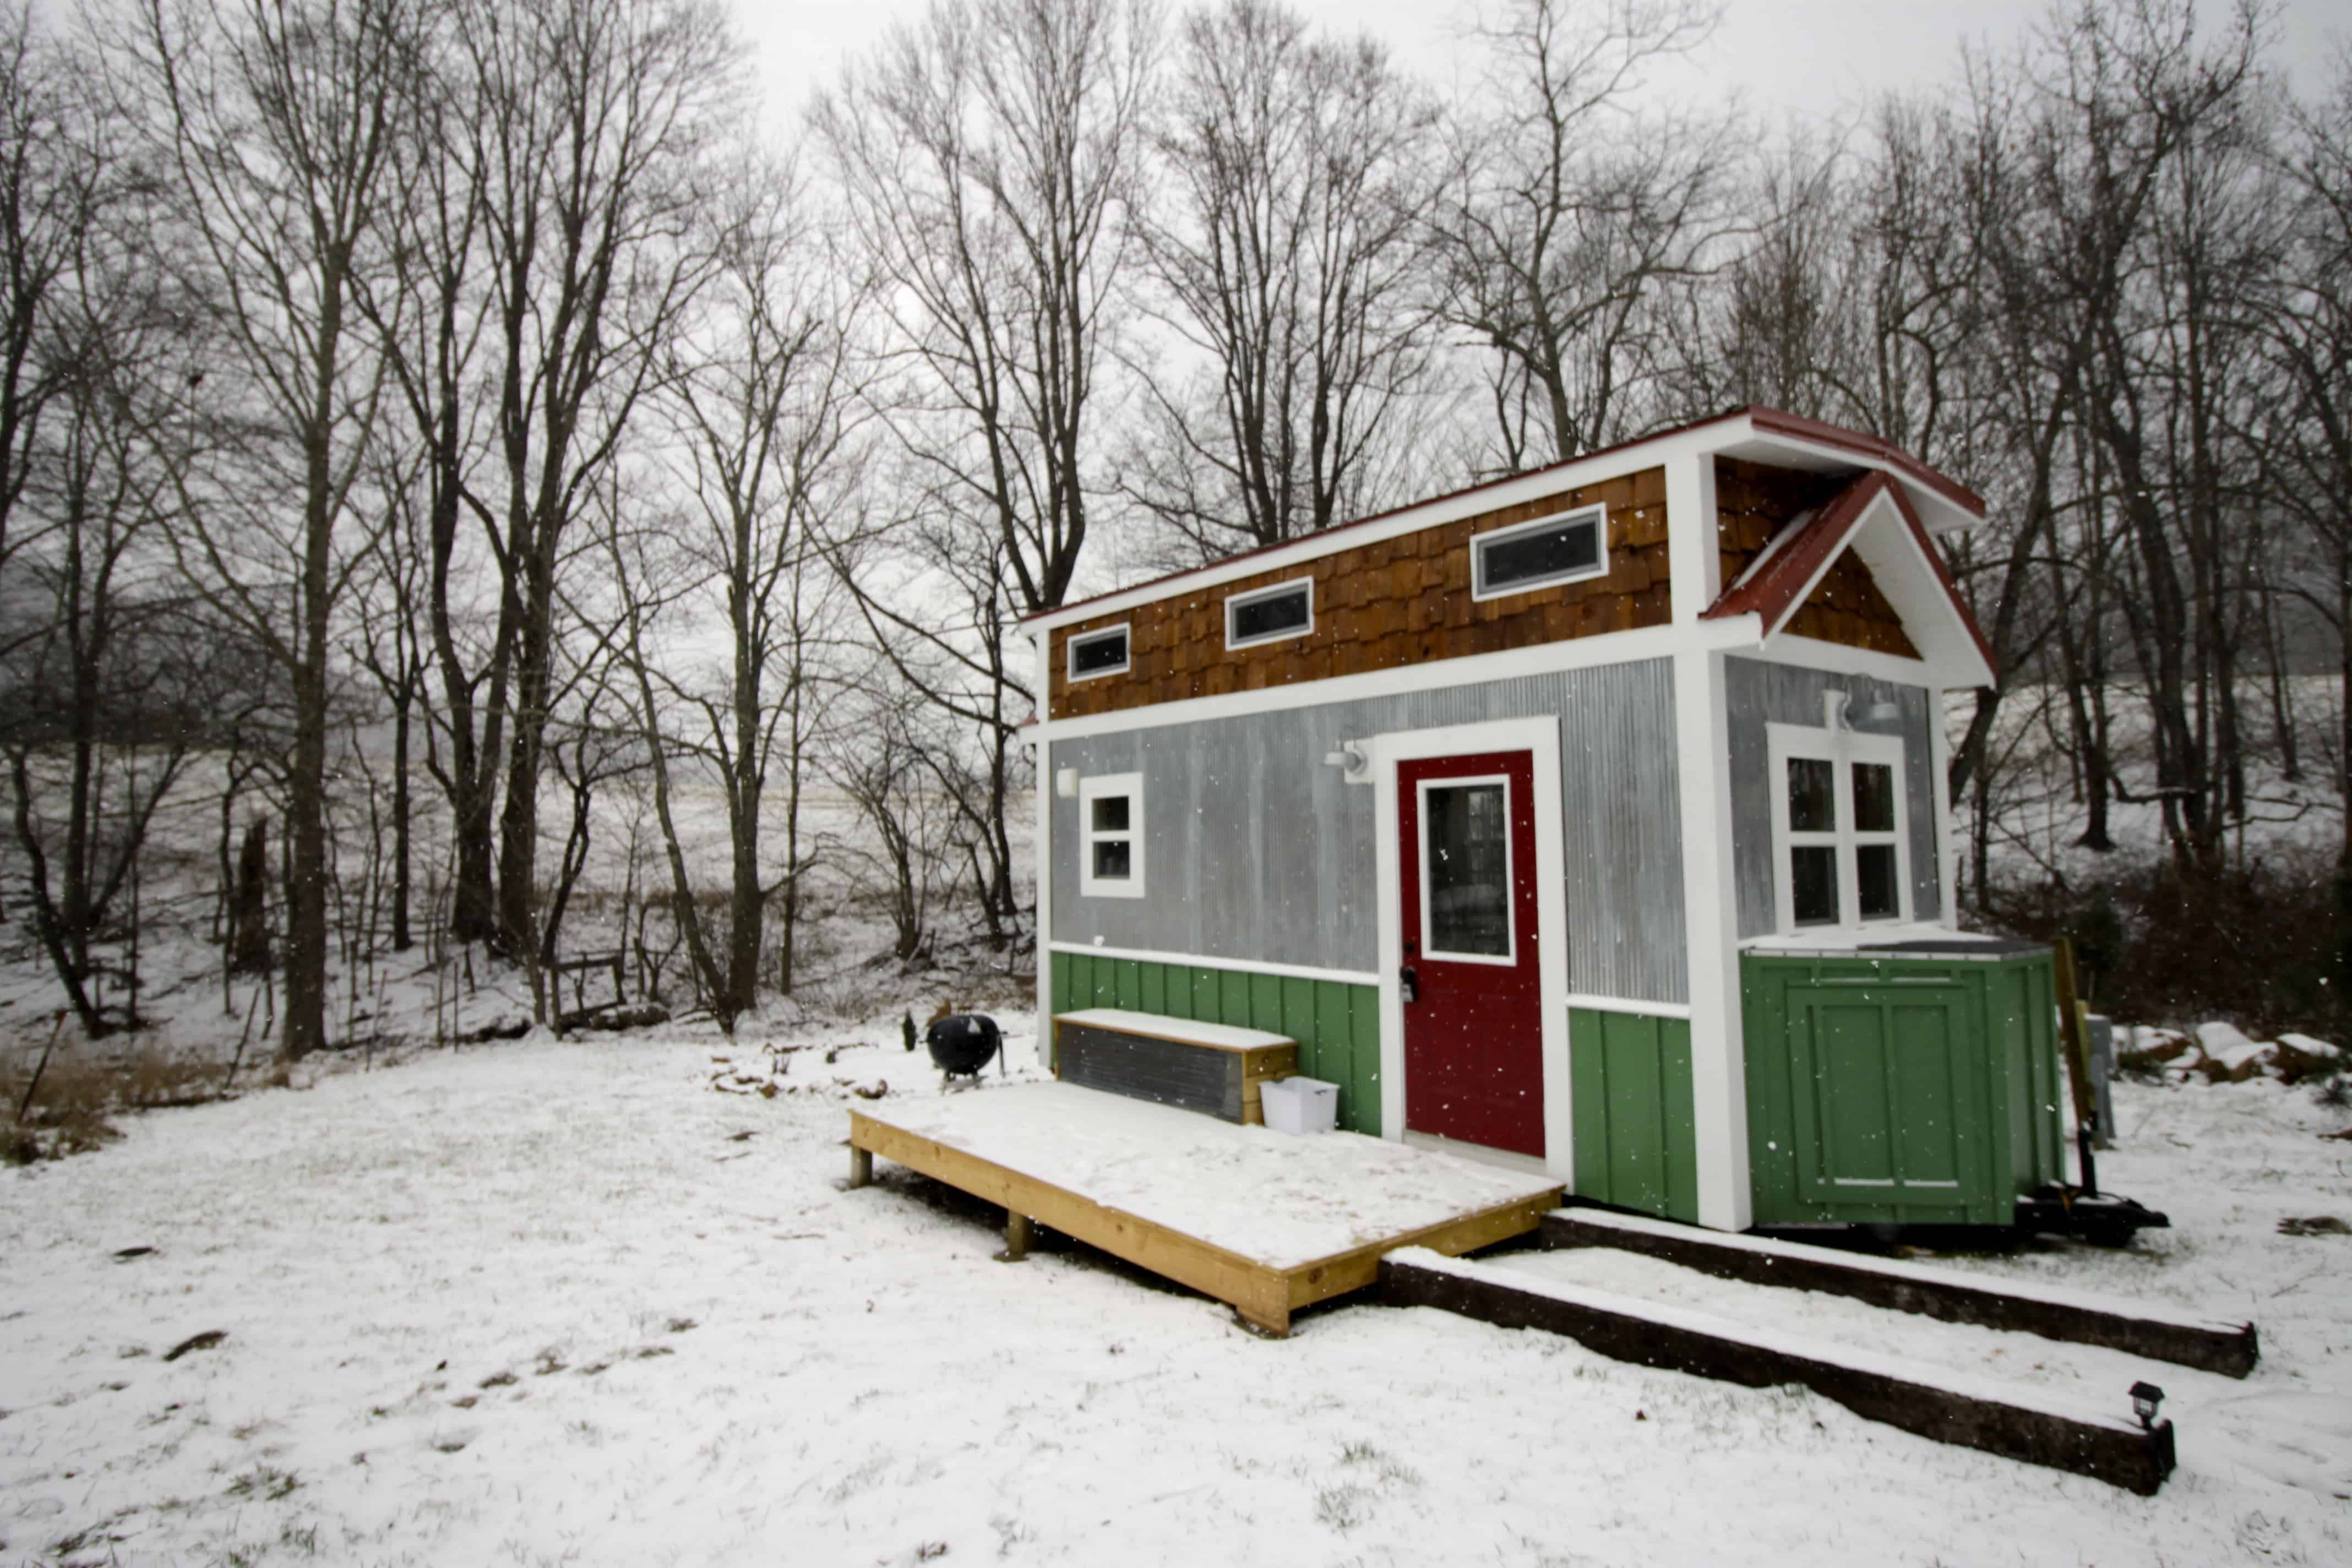 Our Stay in a Tiny Home! - Charleston Crafted